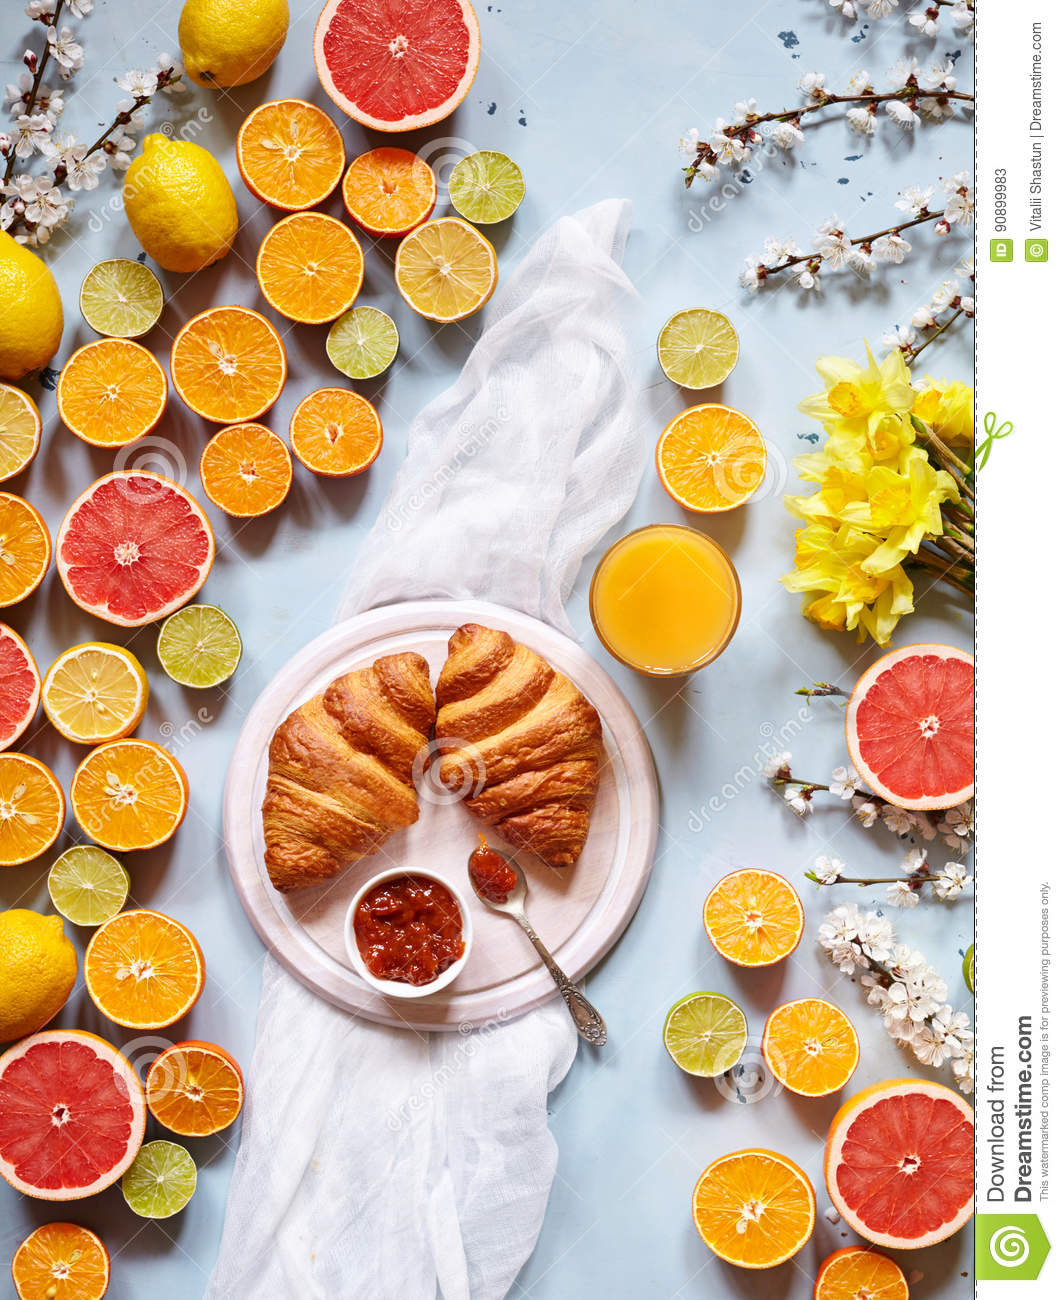 Variety of fresh citrus fruits for making juice or smoothie with fresh croissants and juice on a light blue background